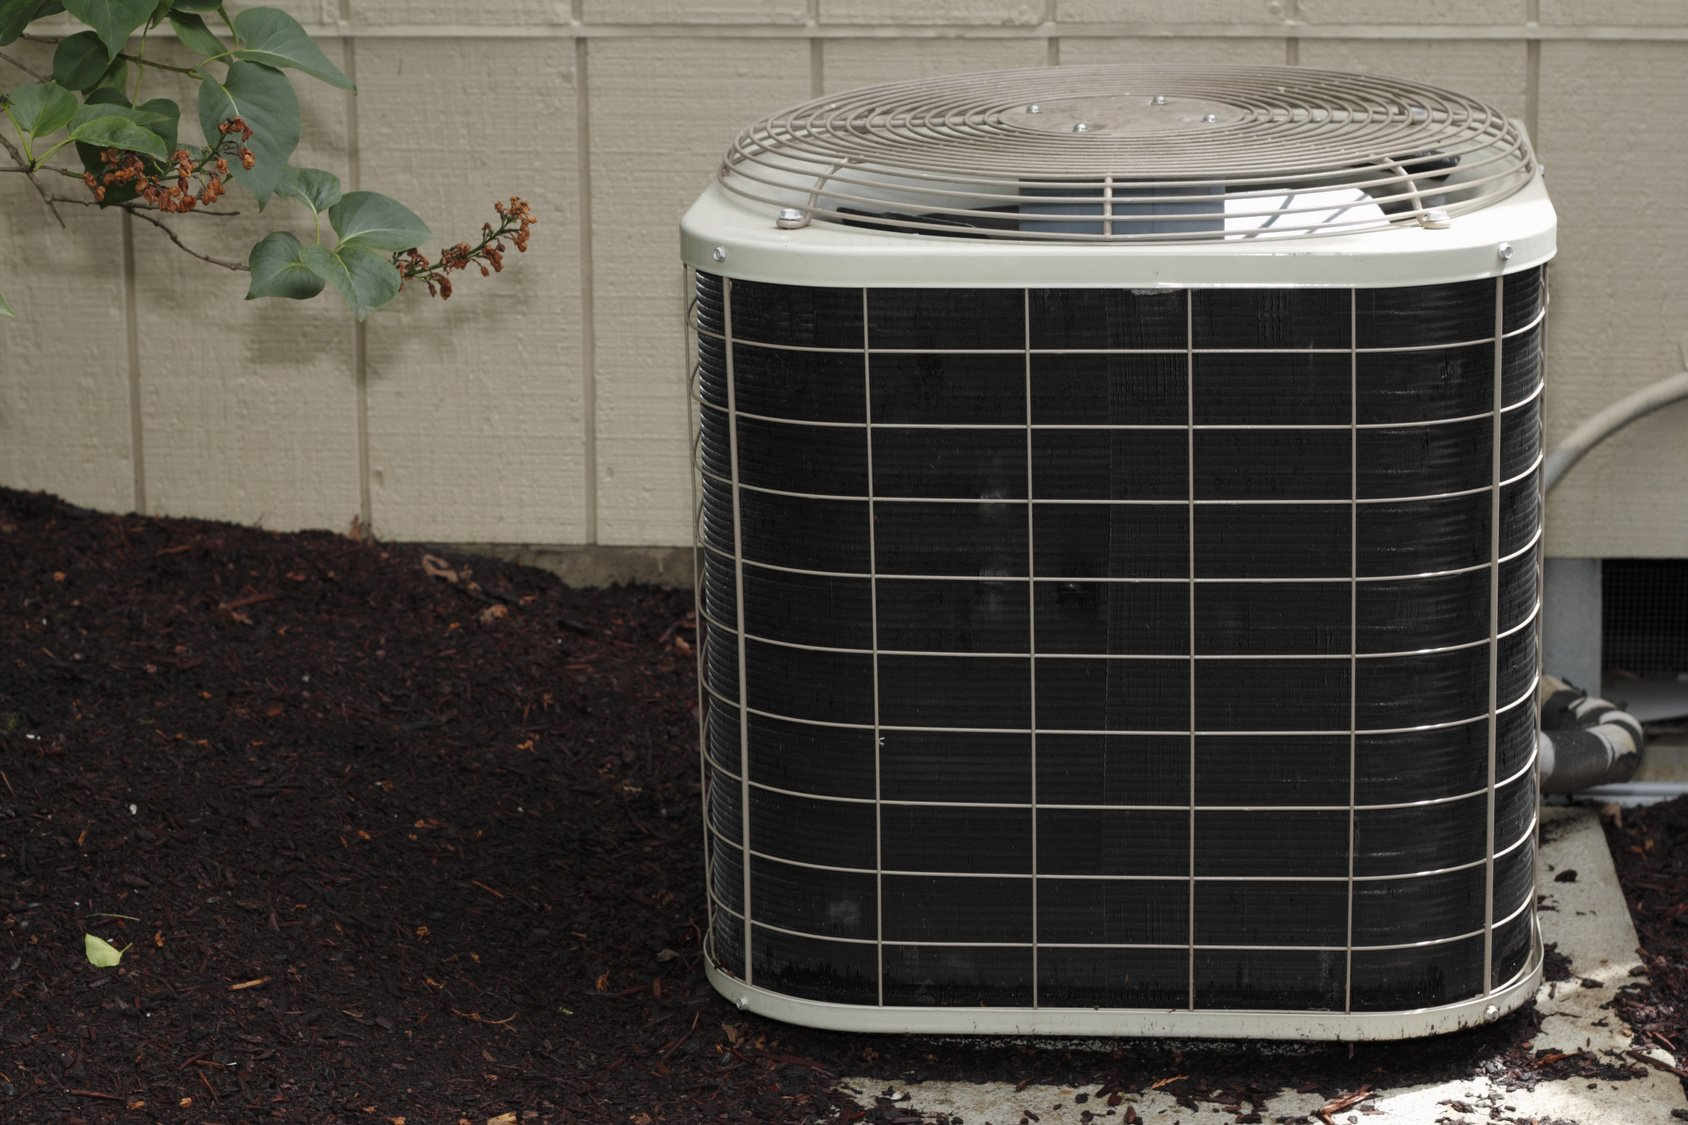 Central Air Conditioner Lifespan How Old Is Too Old